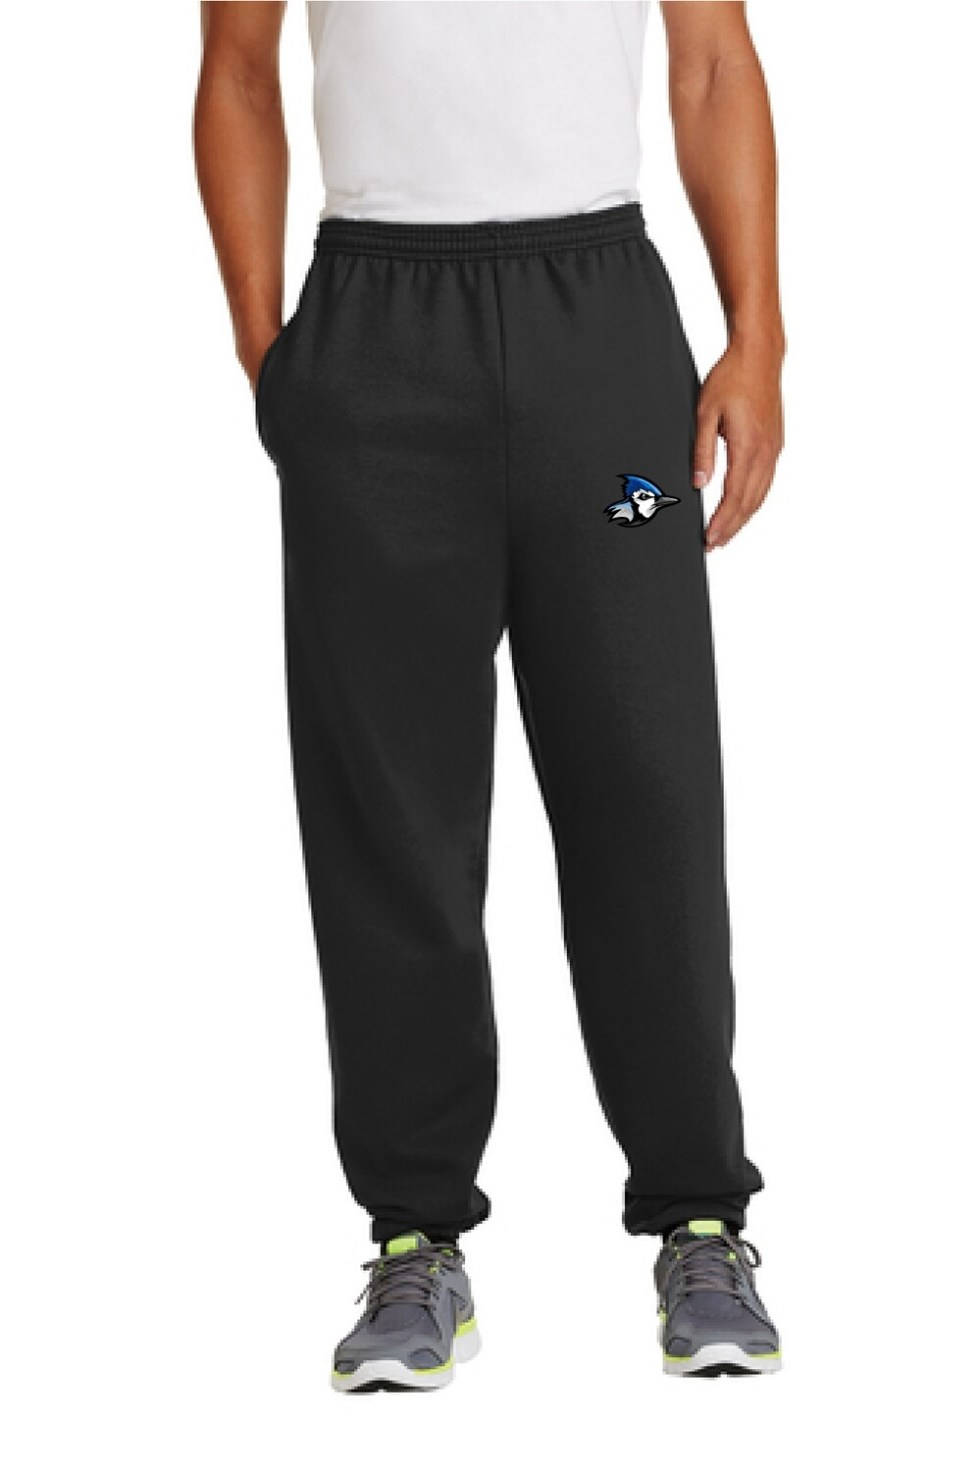 Whitesville Spirit Wear Sweatpants